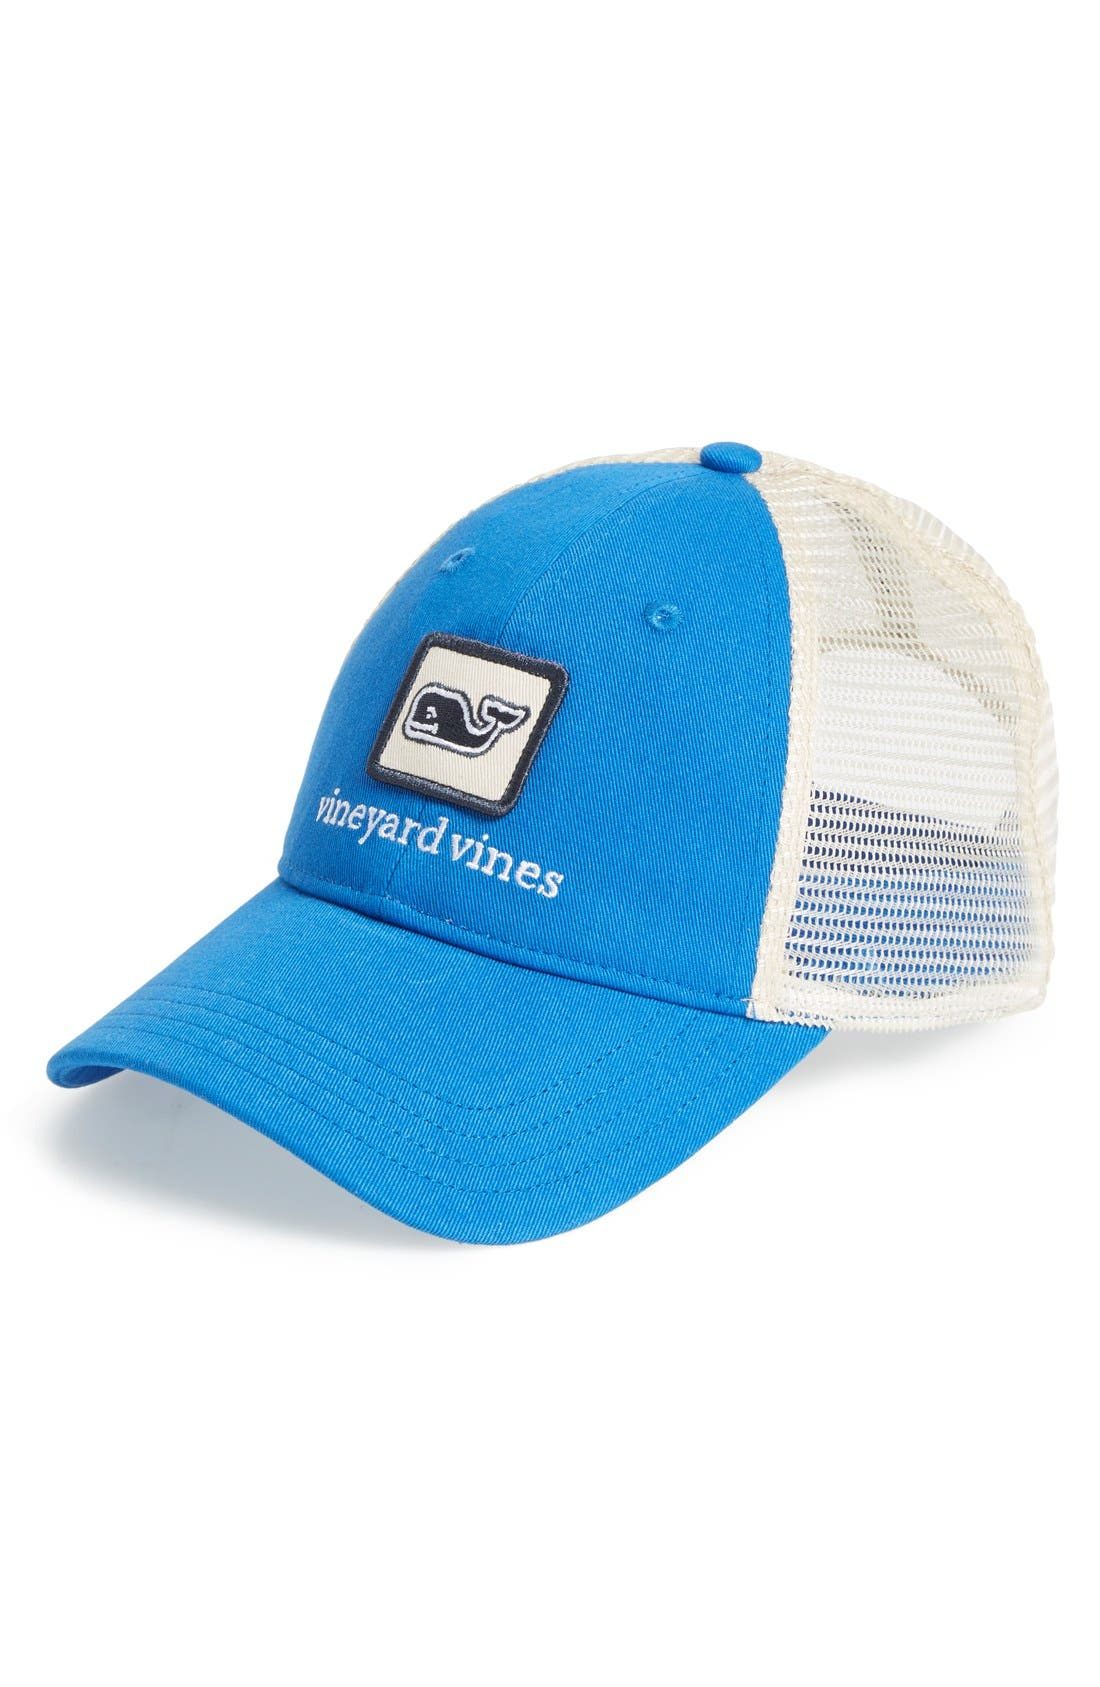 Alternate Image 1 Selected - vineyard vines Whale Patch Trucker Hat